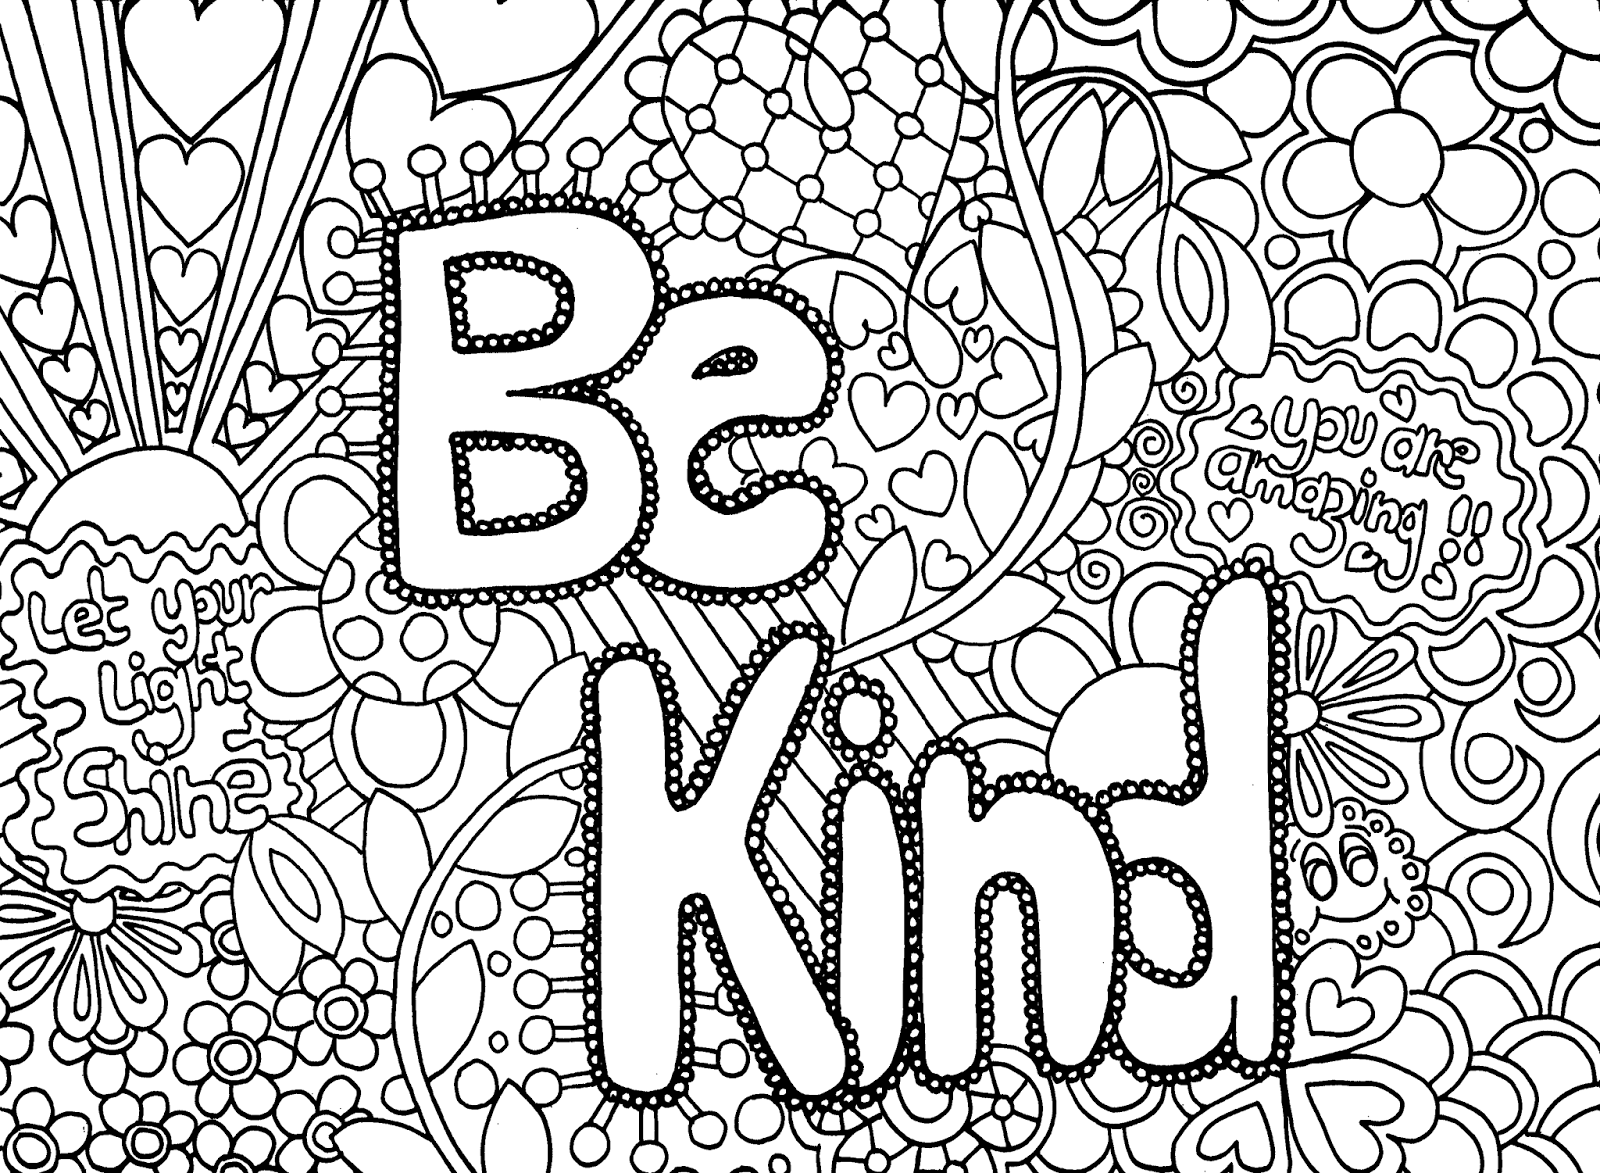 Most Recent Free Of Charge Coloring Pages Hippie Strategies The Beautiful Point Co Coloring Pages For Teenagers Detailed Coloring Pages Abstract Coloring Pages